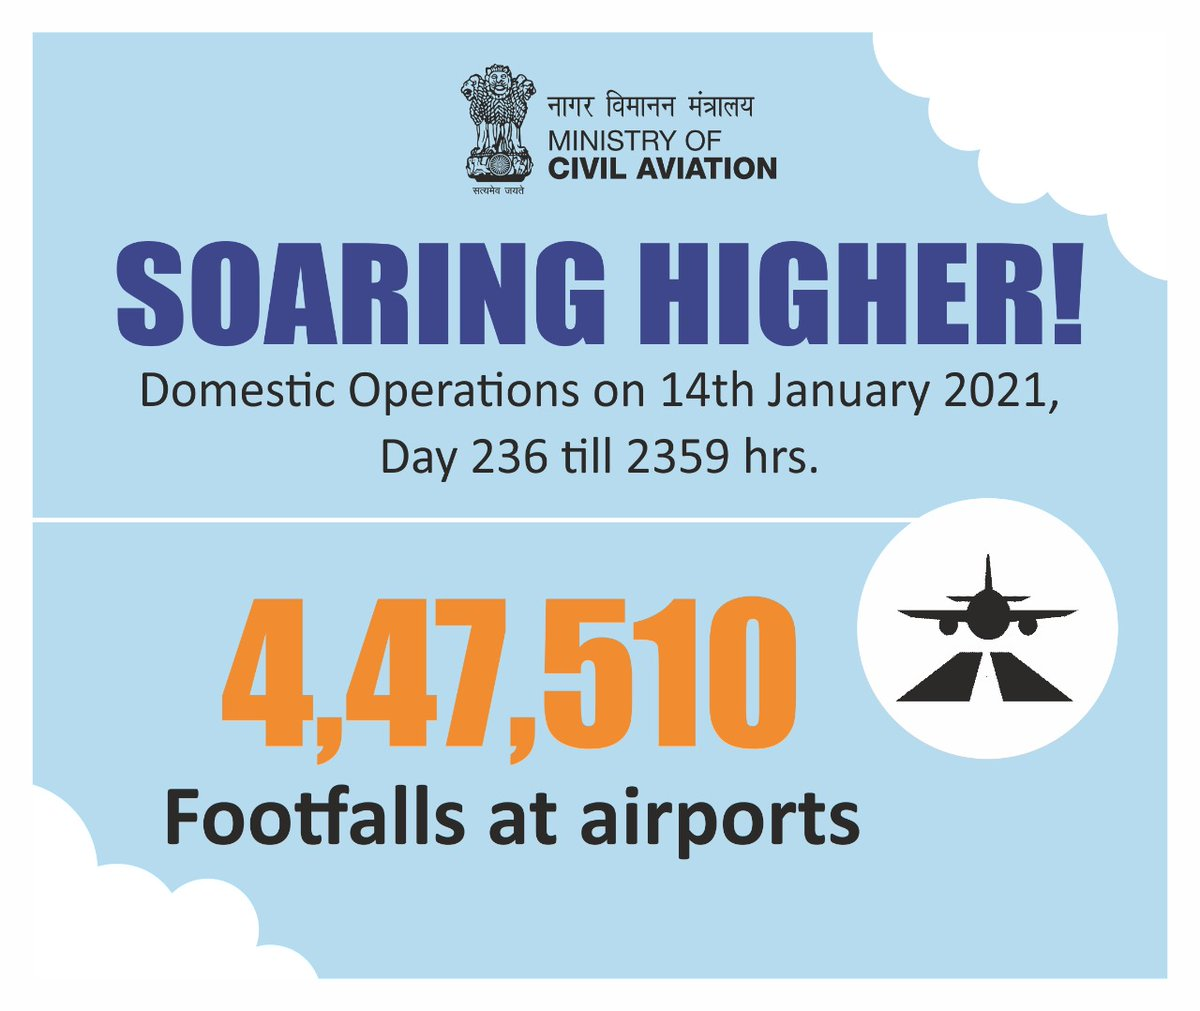 India soaring higher!  Over 4.47 lakh footfalls were recorded at airports across the country on 14th January. Aviation operations continue to soar! #SabUdenSabJuden #IndiaFliesHigh